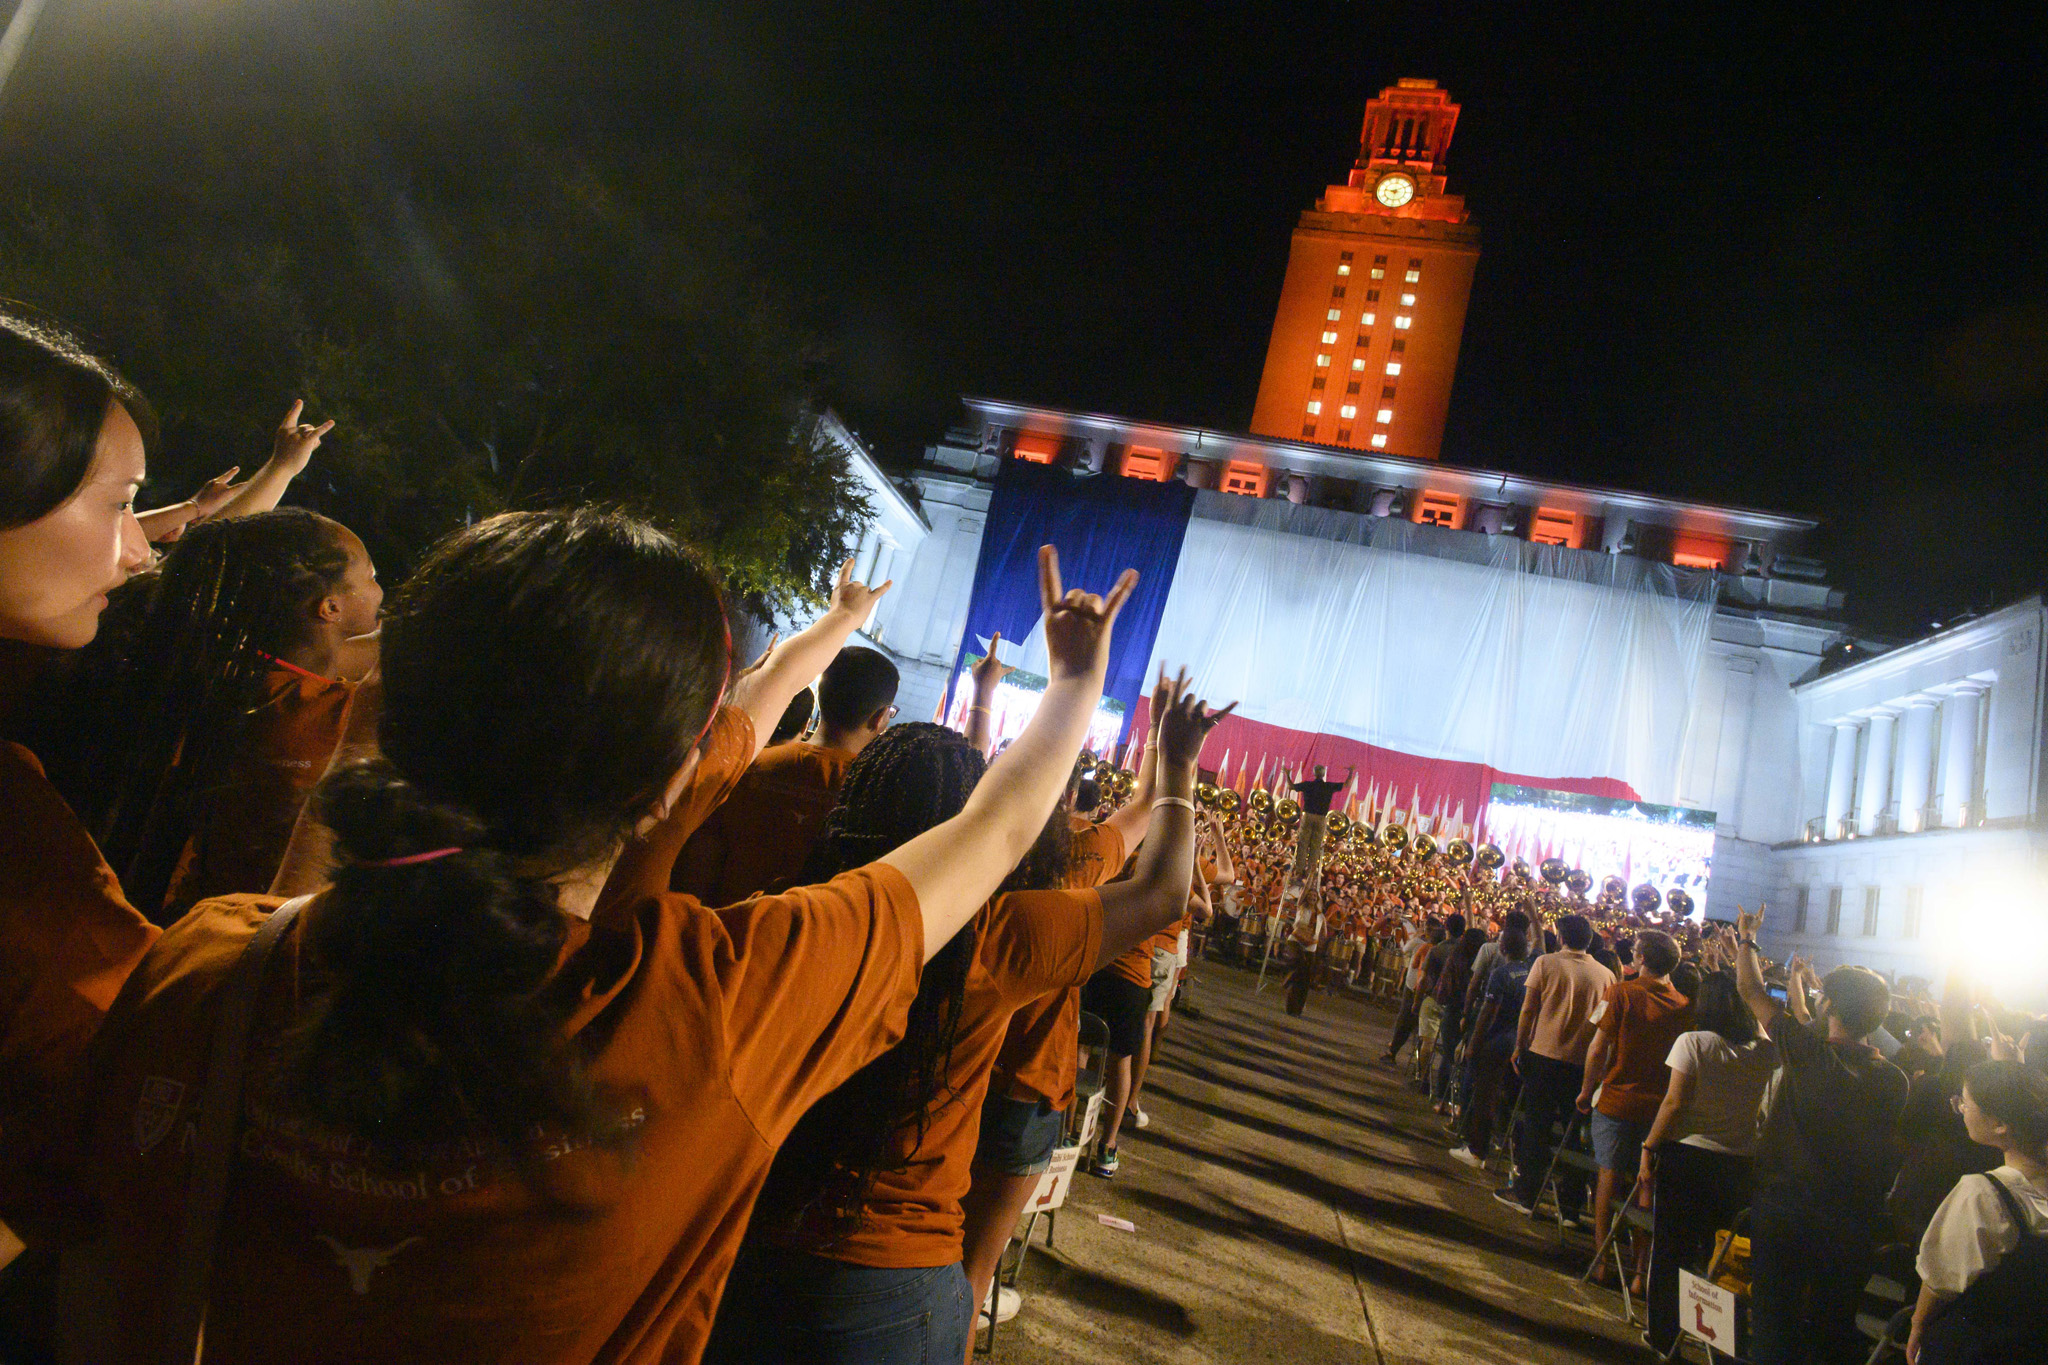 Along with Mooov-In, Horns Up Night, and Party of the Plaza, Gone to Texas is part of Longhorn Welcome, a series of events for students at the start of a new academic year.